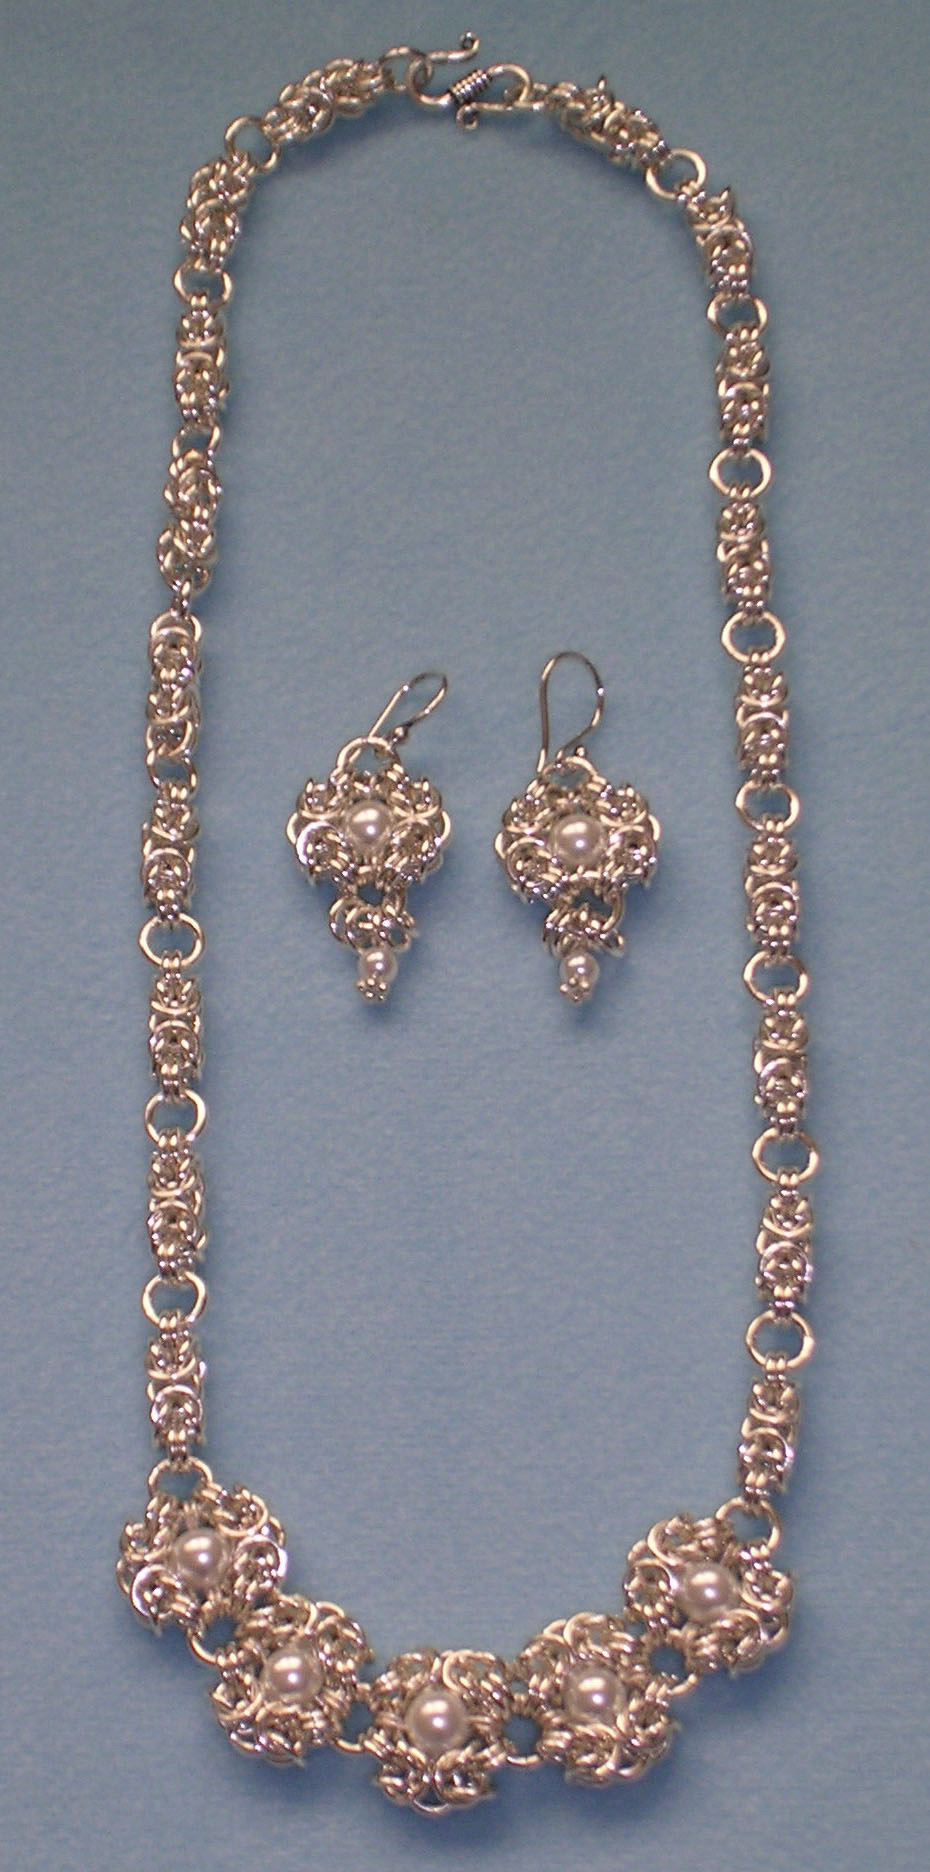 Byzantine Rose Necklace with Romanov centerpiece and earrings